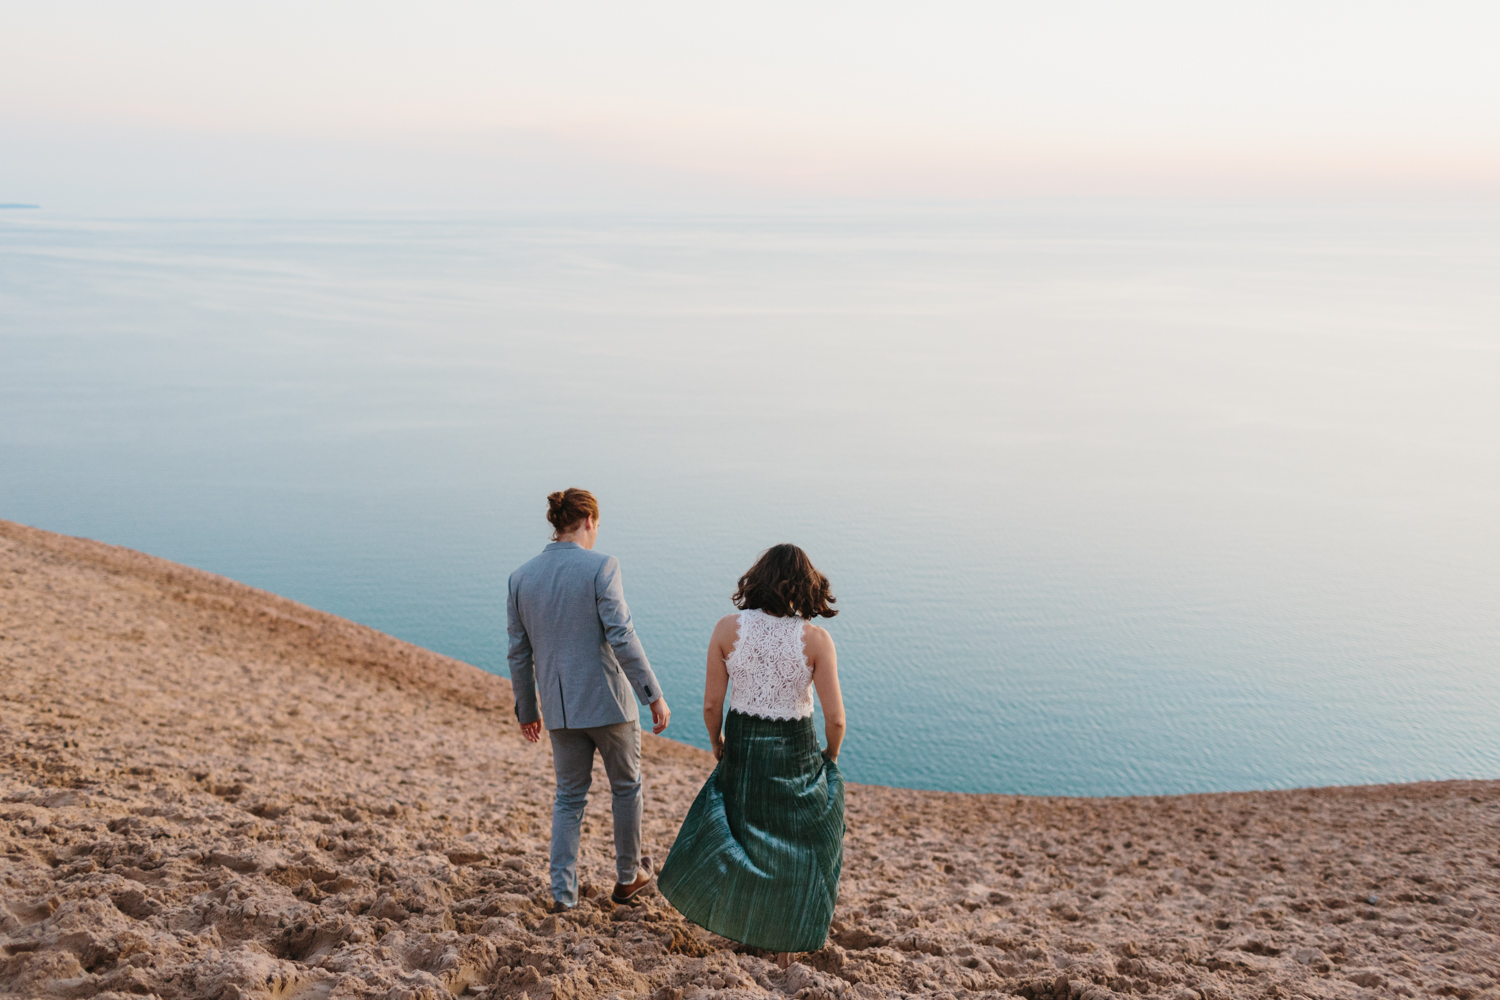 Sleeping Bear Dunes Elopement Wedding Photography by Mae Stier Northern Michigan Photographer-032.jpg